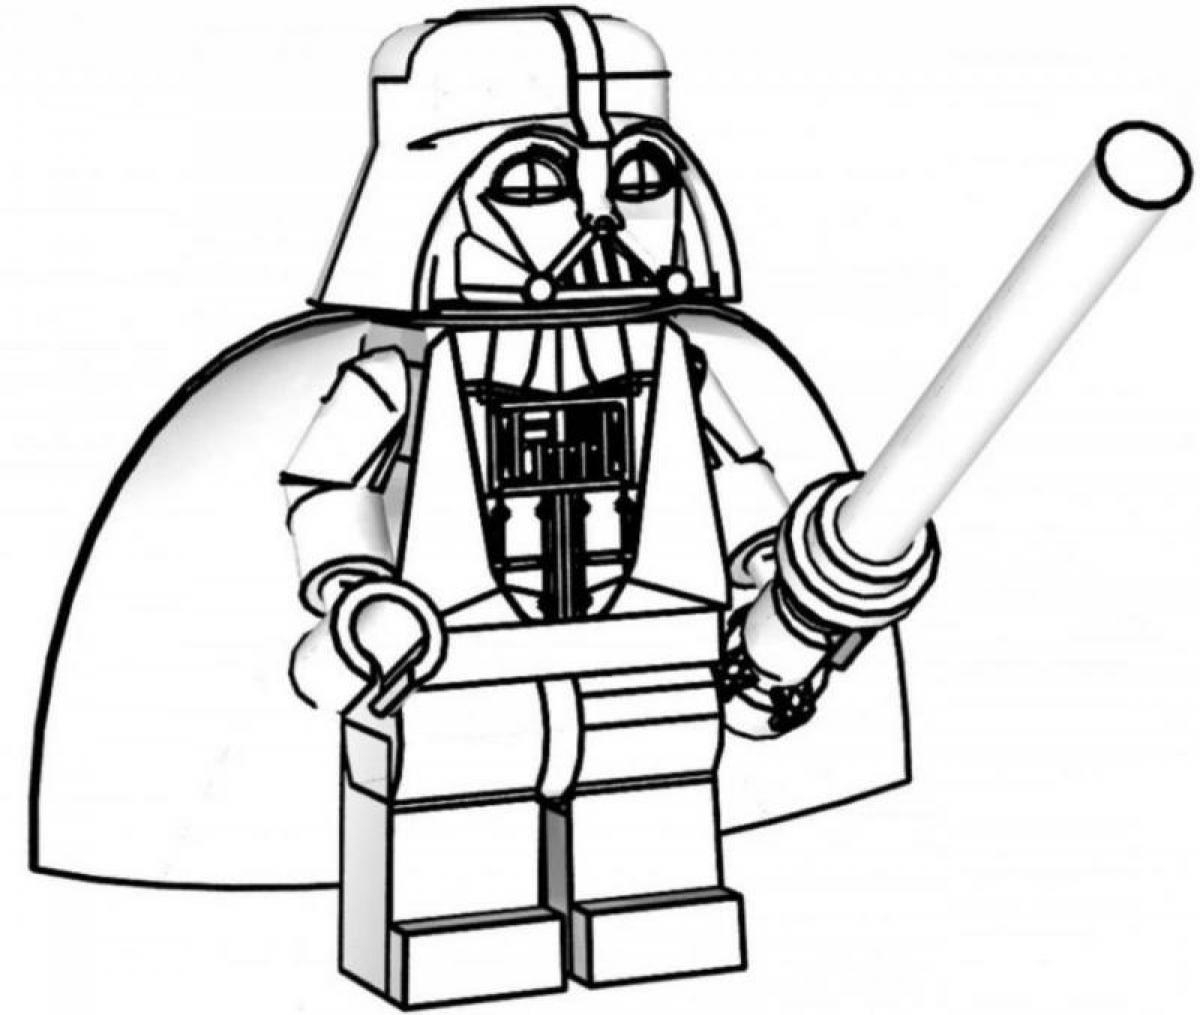 Yoda Coloring Pages | Free download on ClipArtMag